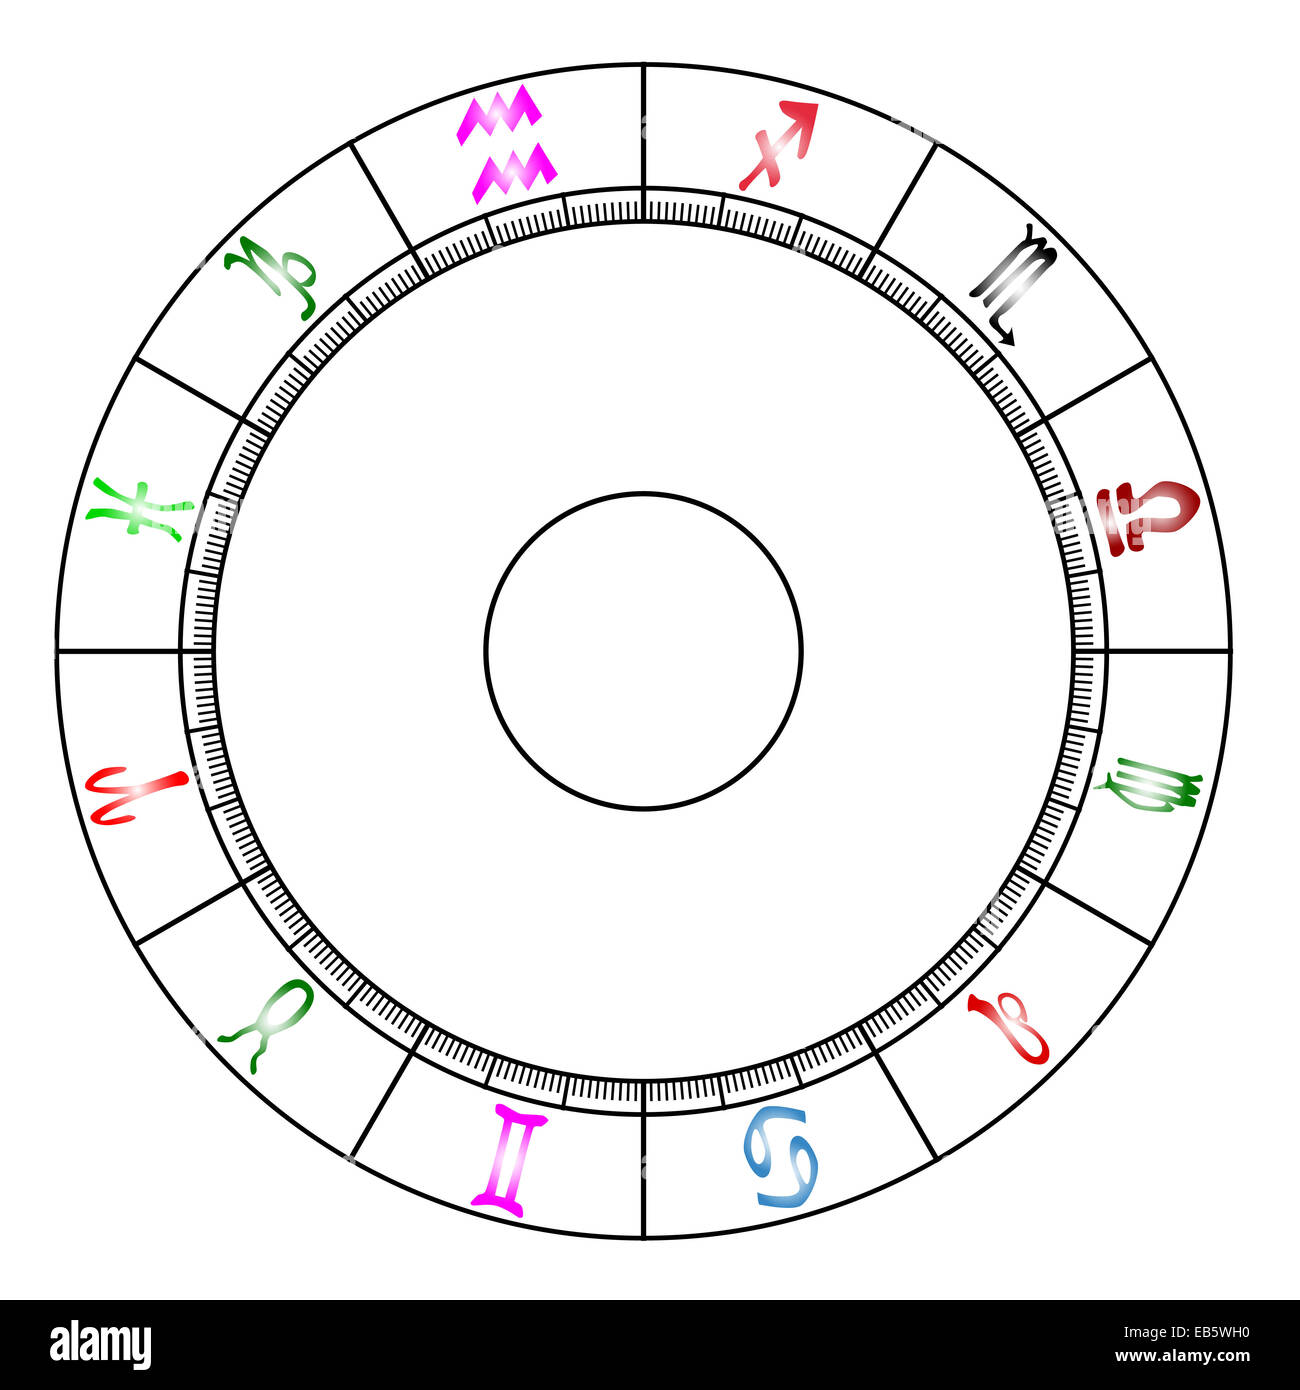 Western astrology chart free gallery free any chart examples blank astrology chart images chart design ideas a blank astrology chart over a white background stock geenschuldenfo Images